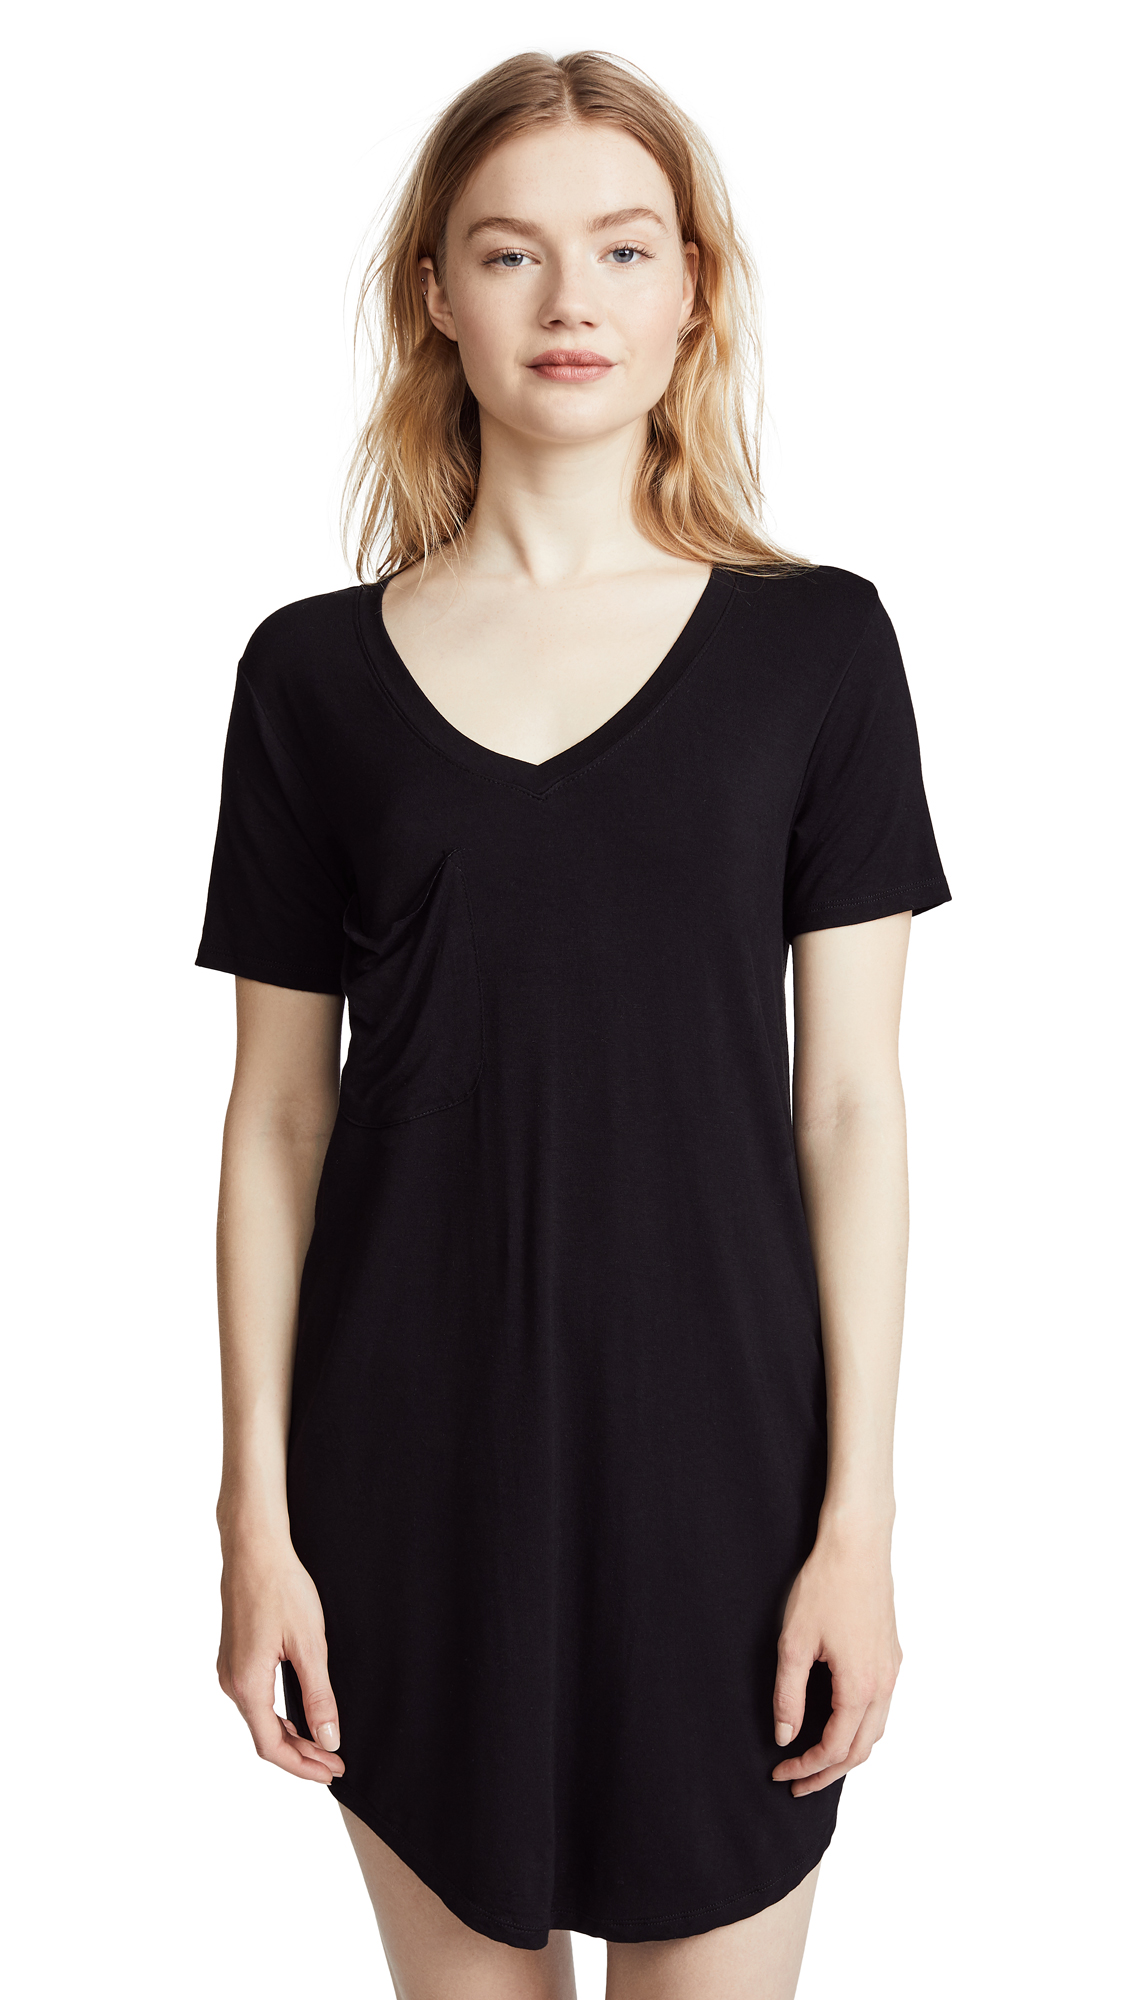 Z Supply The Pocket Tee Dress In Black